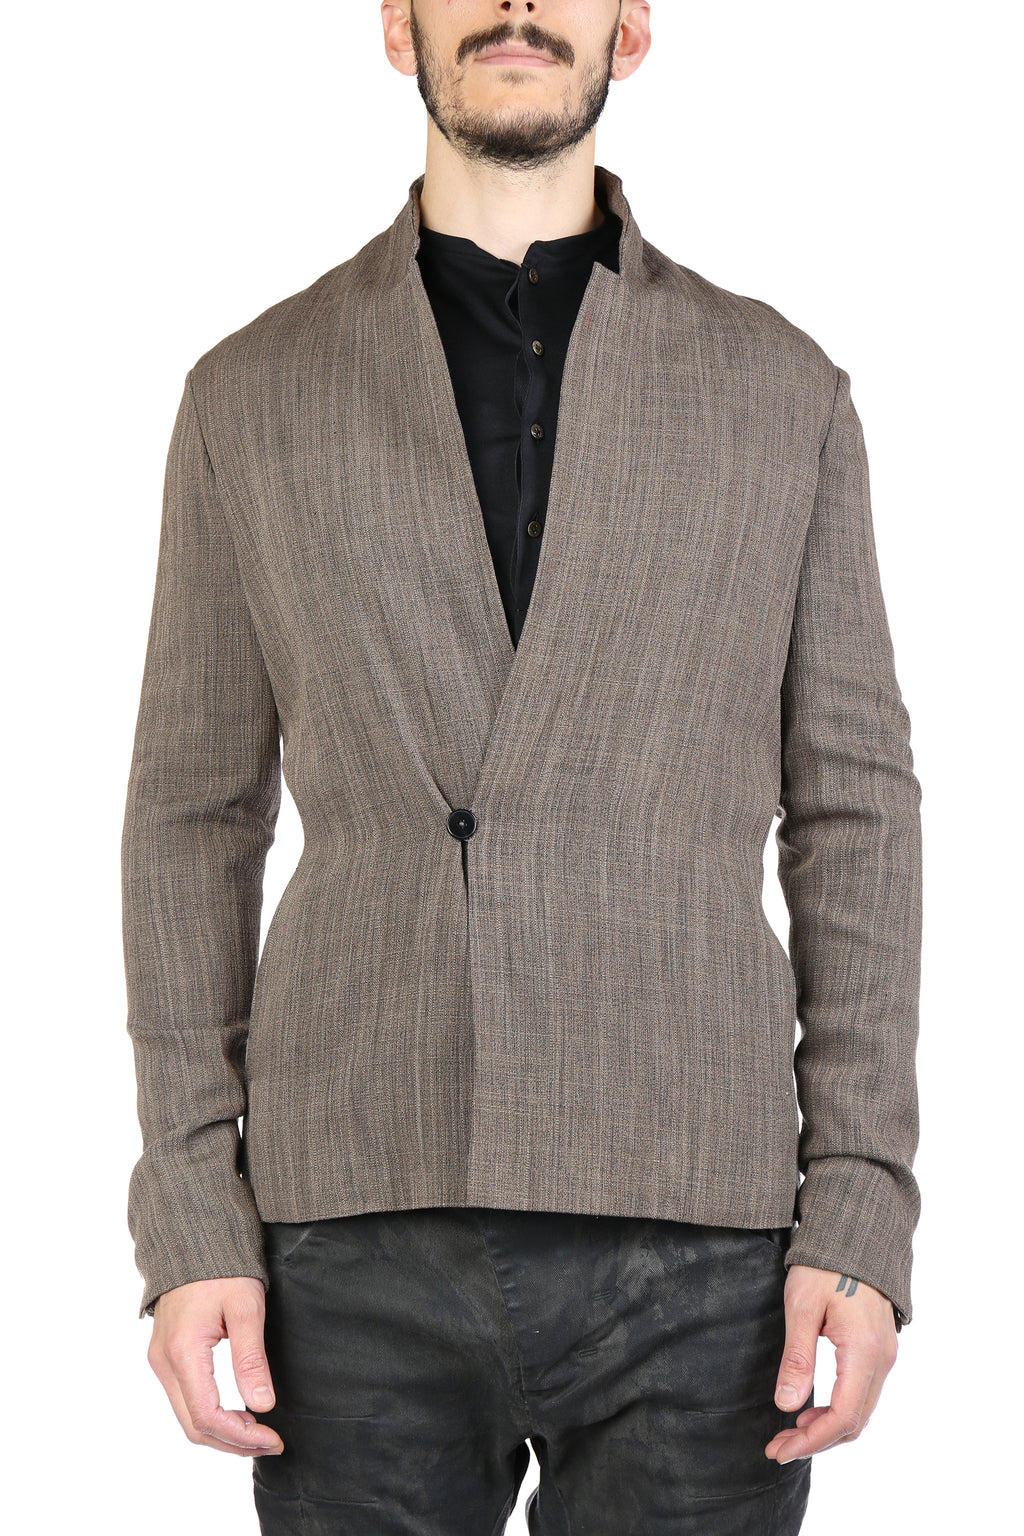 MA+ MEN VERTICAL POCKET FITTED JACKET